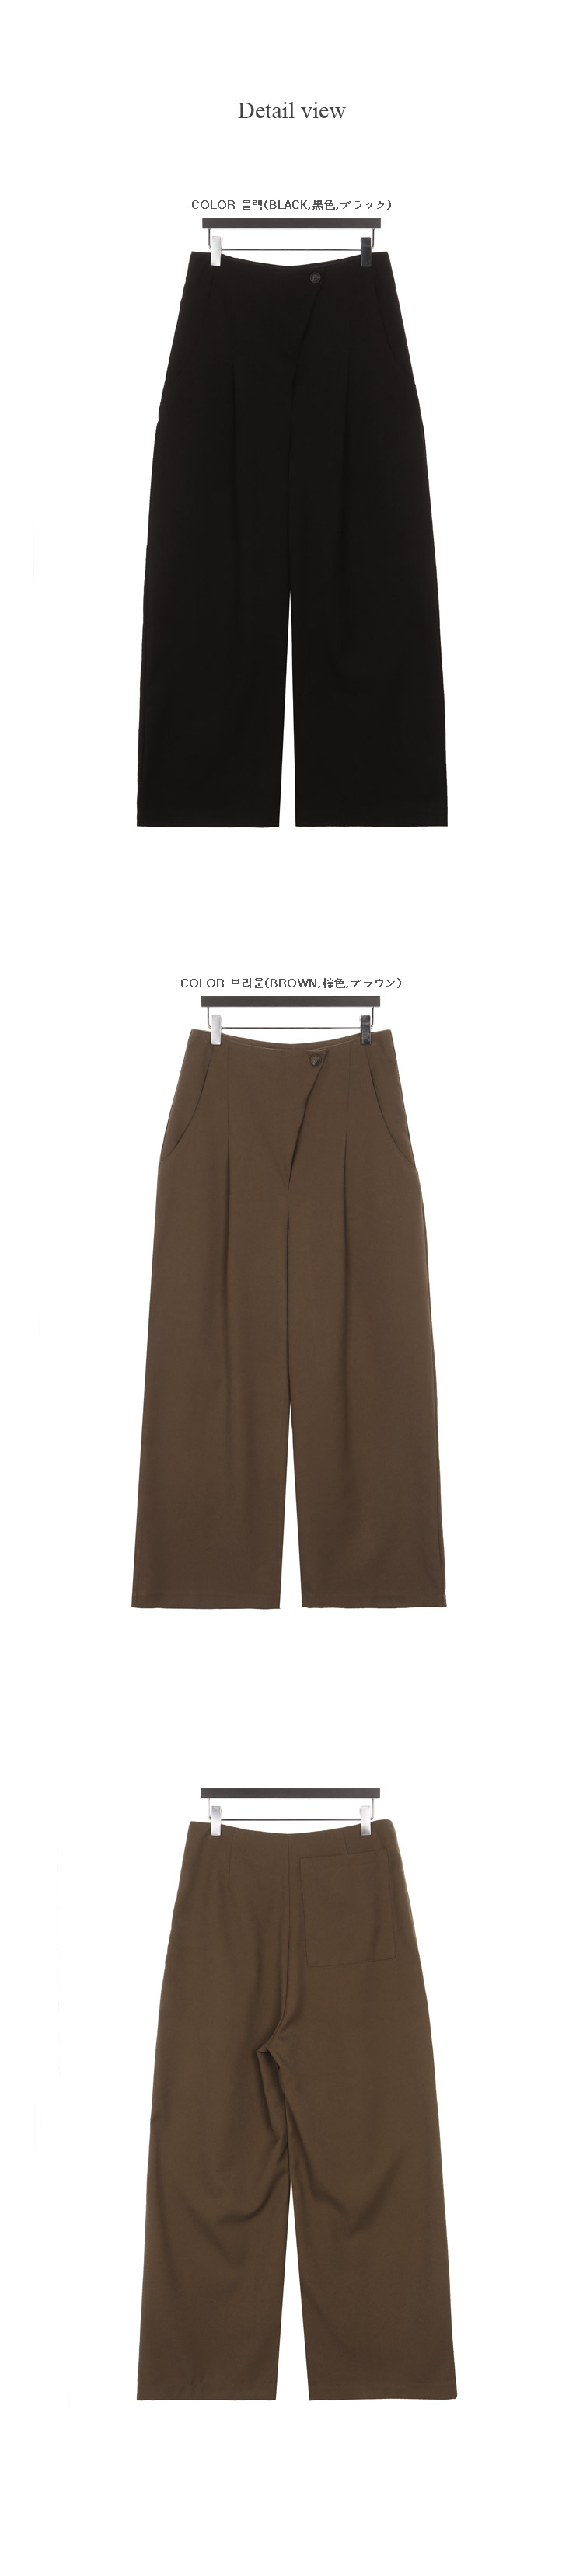 Slick Diagonal Pants